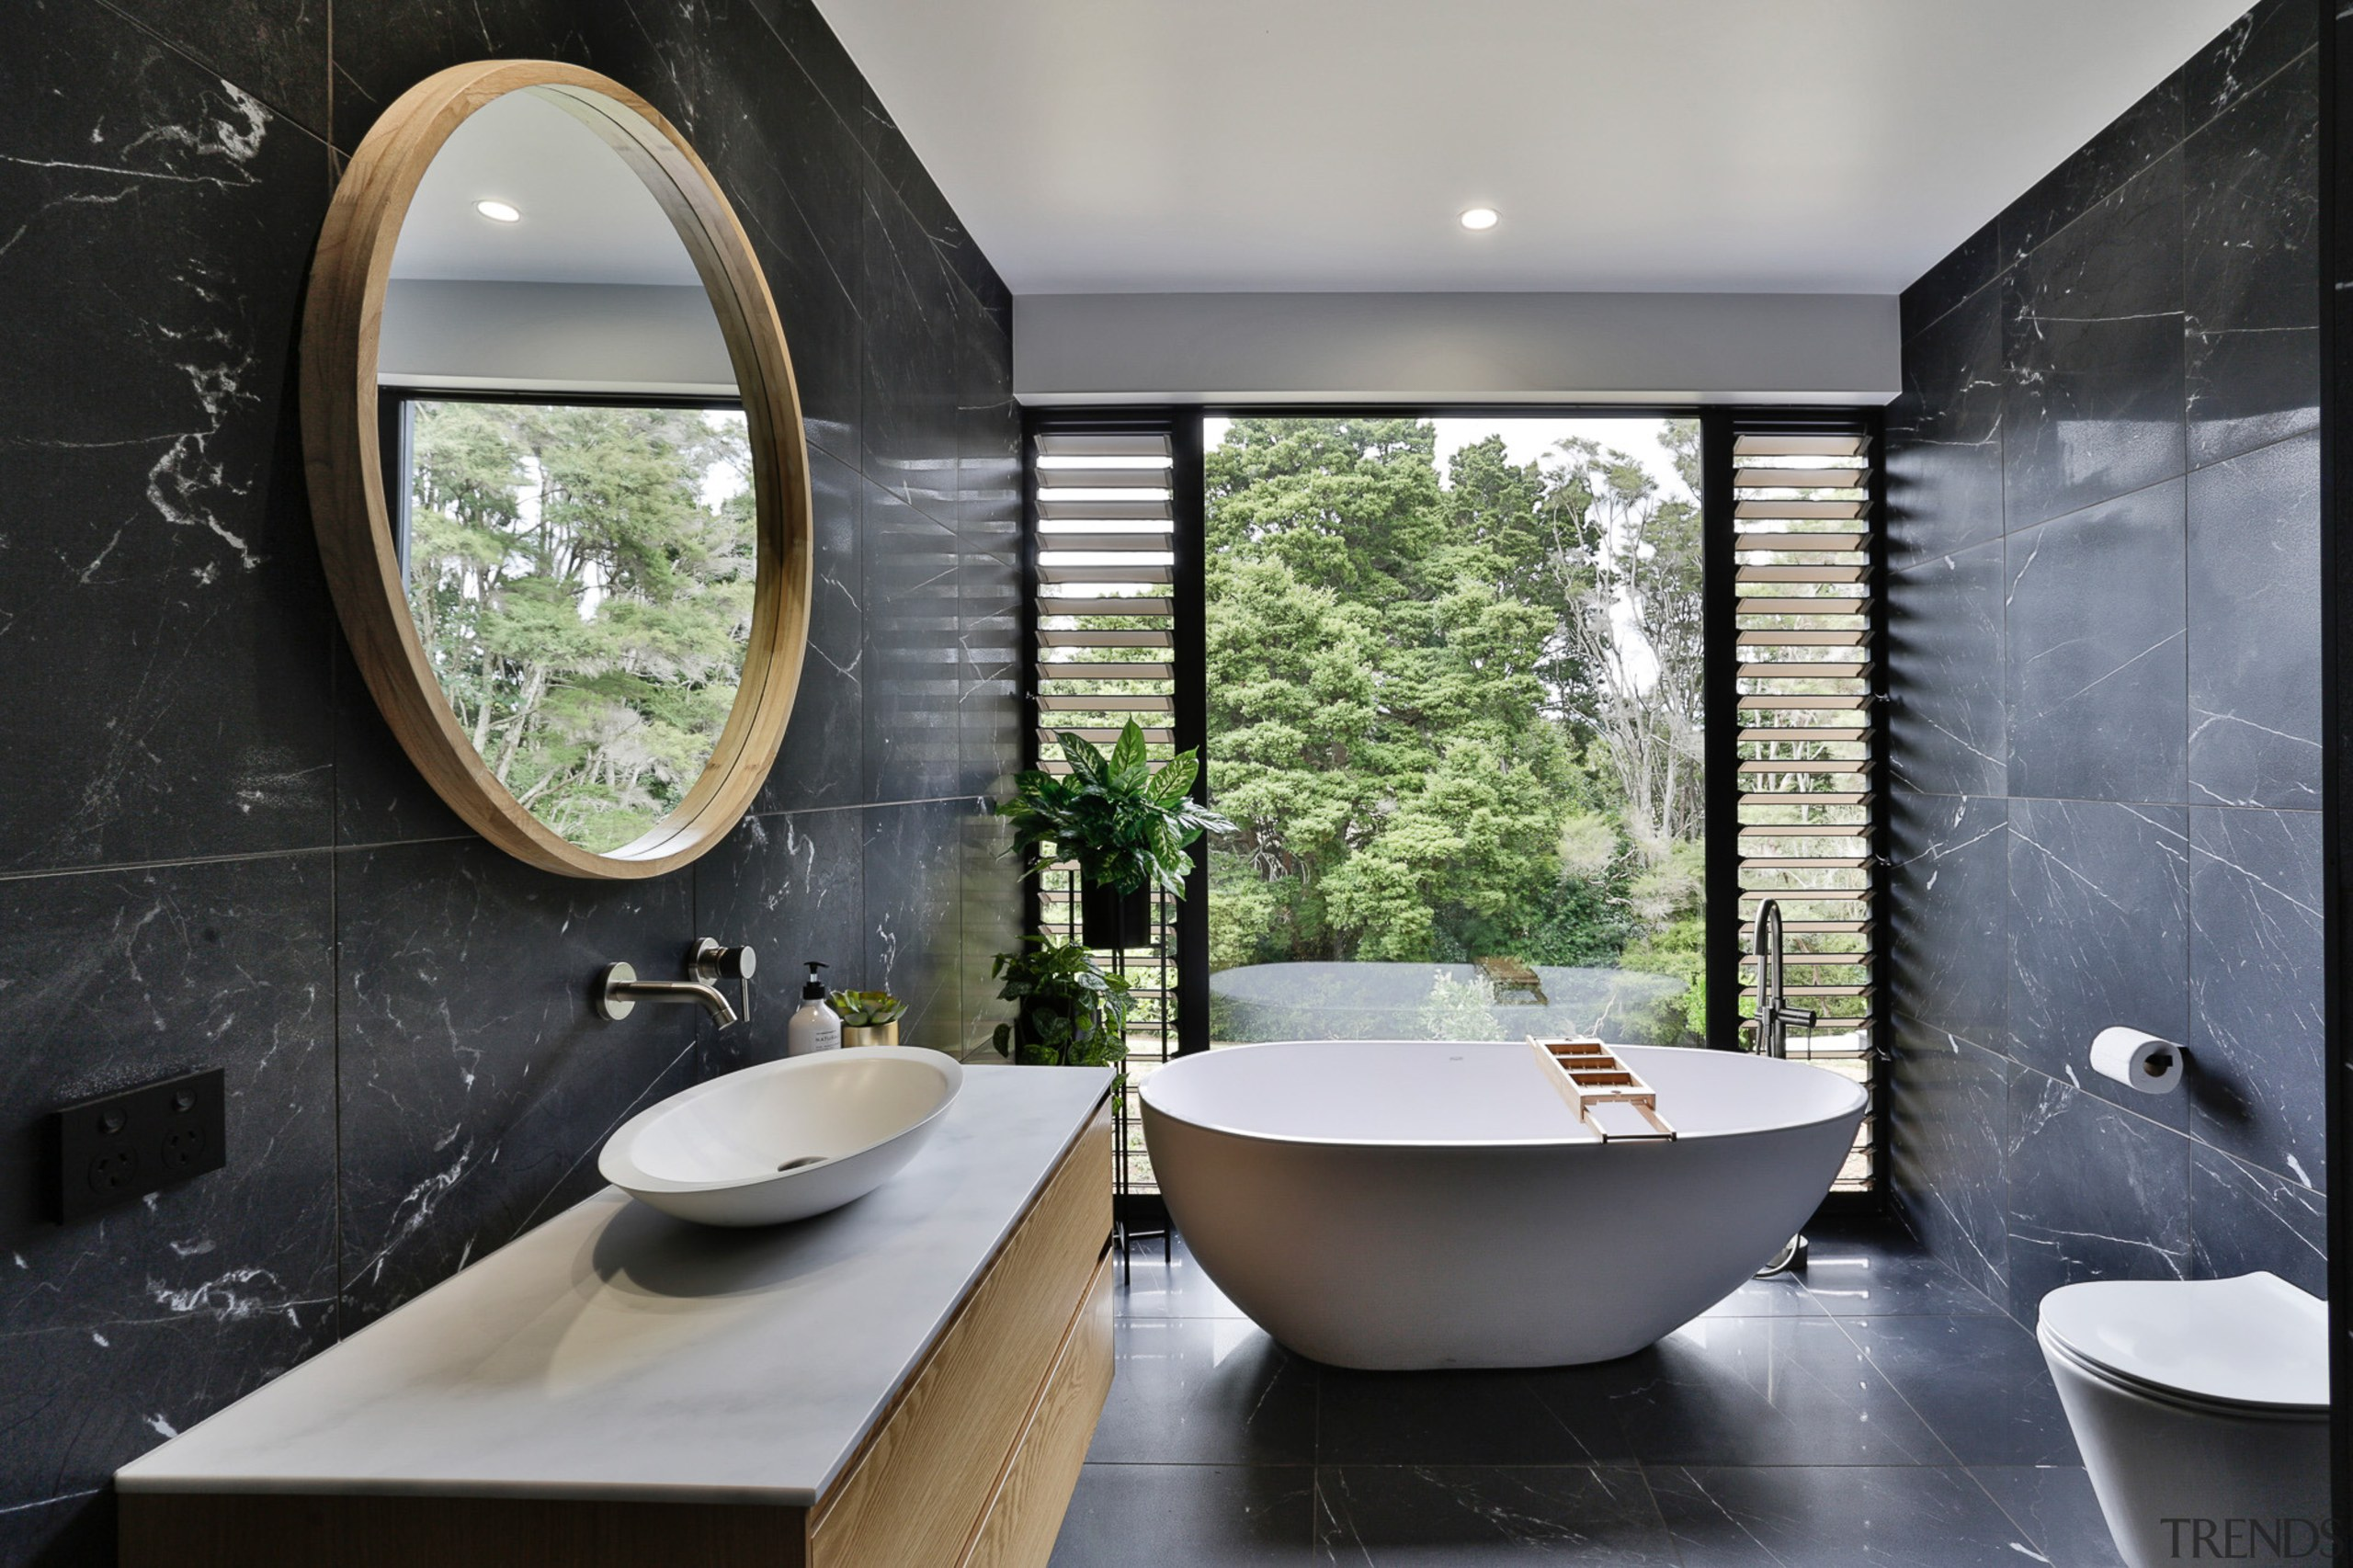 Blakhaus Design – Highly Commended – 2019 TIDA architecture, bathroom, bathtub, building, ceiling, ceramic, floor, flooring, furniture, home, house, interior design, marble, plumbing fixture, property, real estate, room, sink, tap, tile, wall, window, gray, black